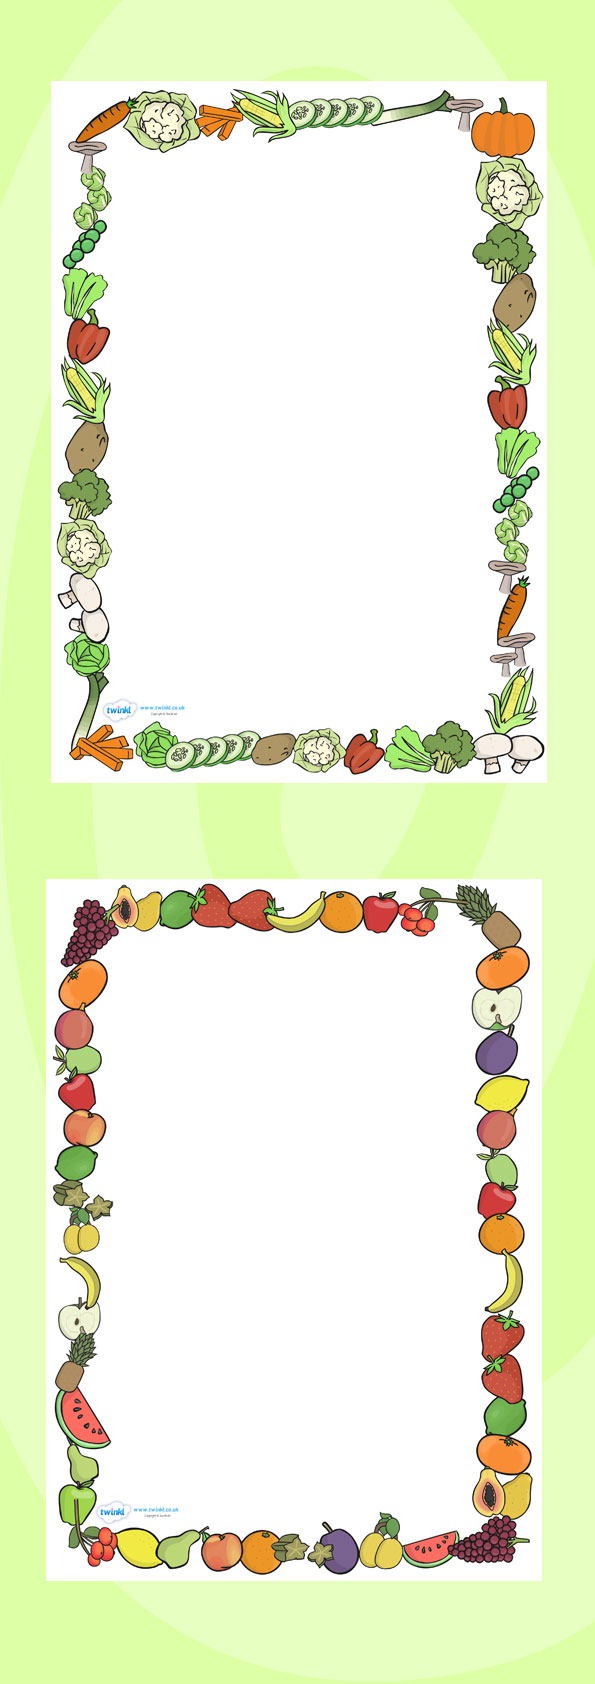 Banana clipart healthy snack Vegetables >> Twinkl Resources Page